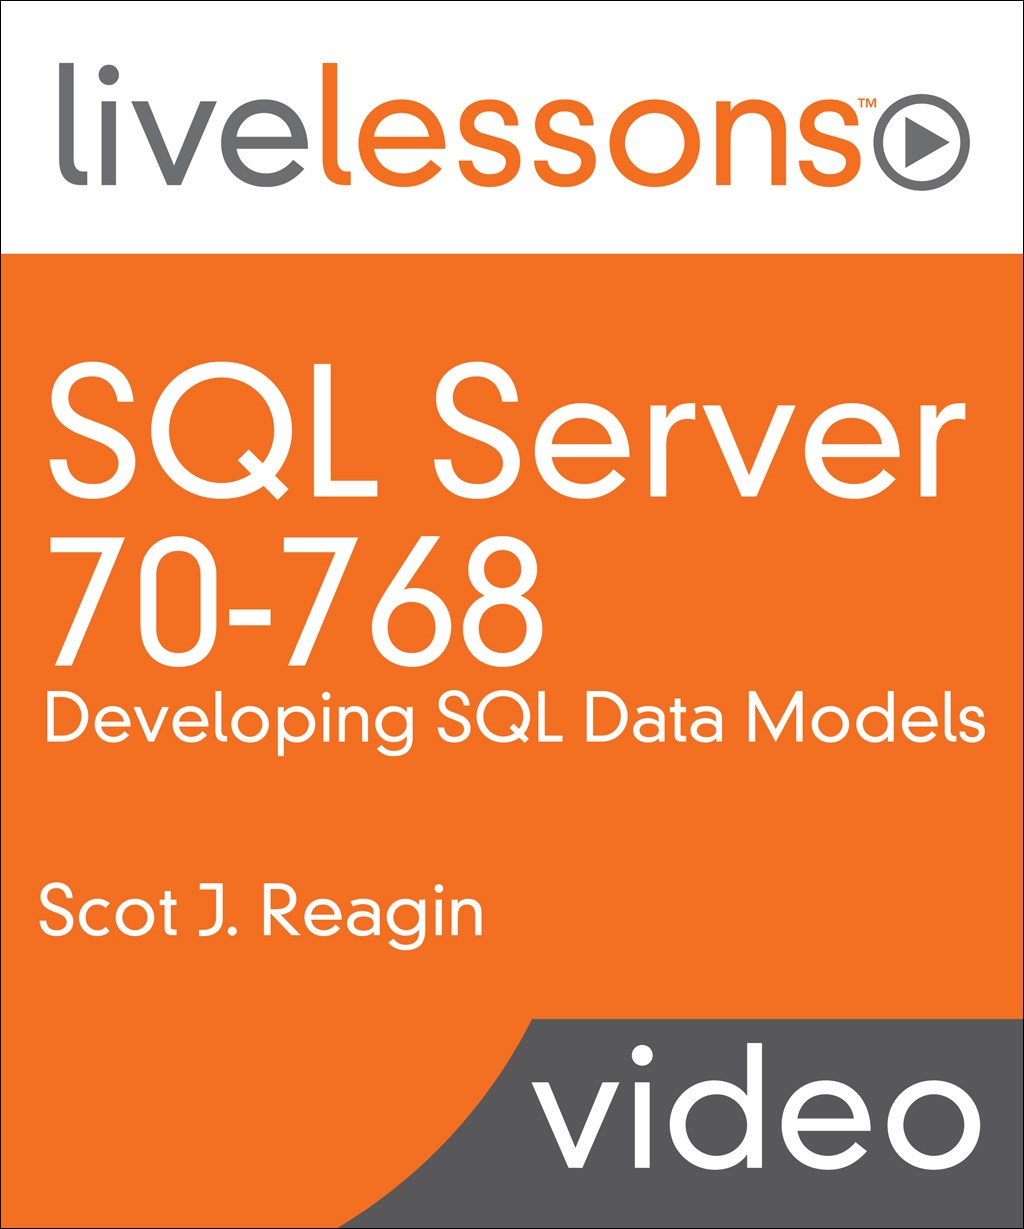 SQL Server 70-768: Developing SQL Data Models LiveLessons (Video Training)